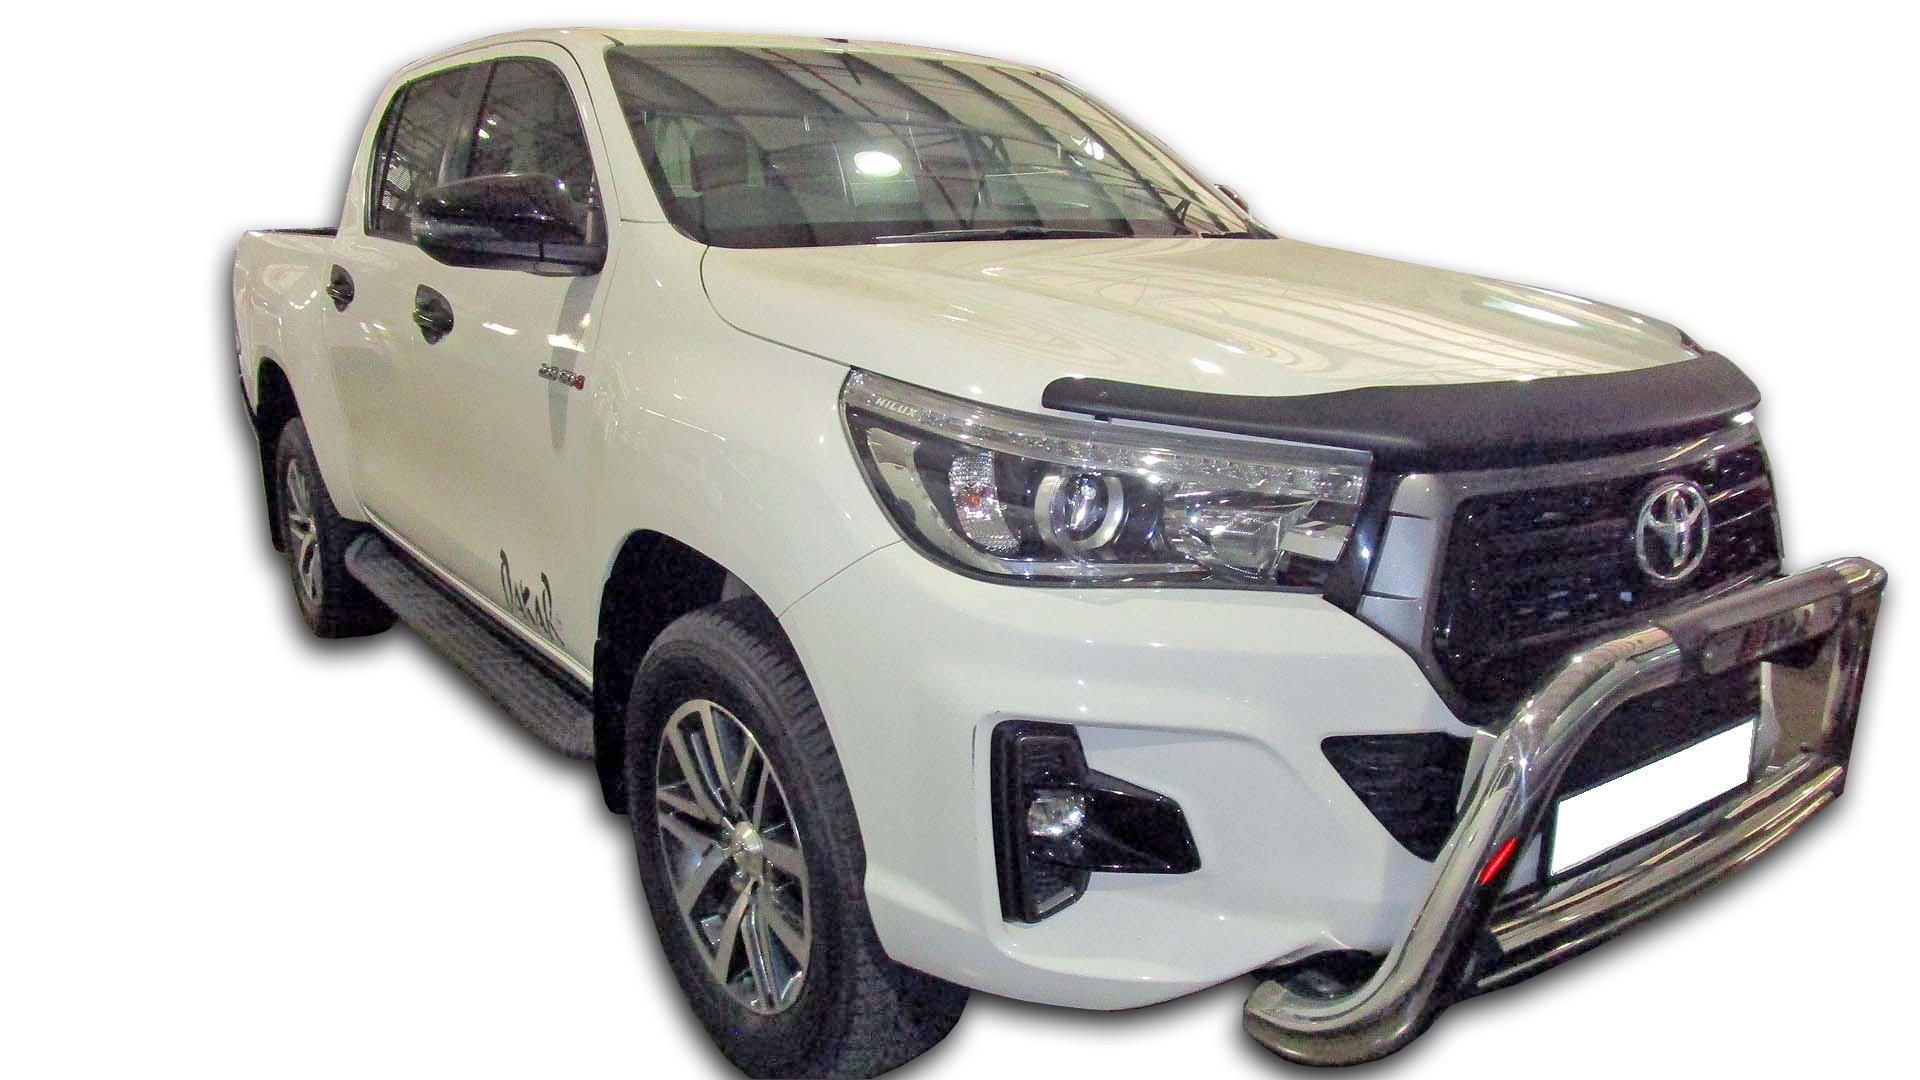 Toyota Hilux 2.8 GD-6-RB